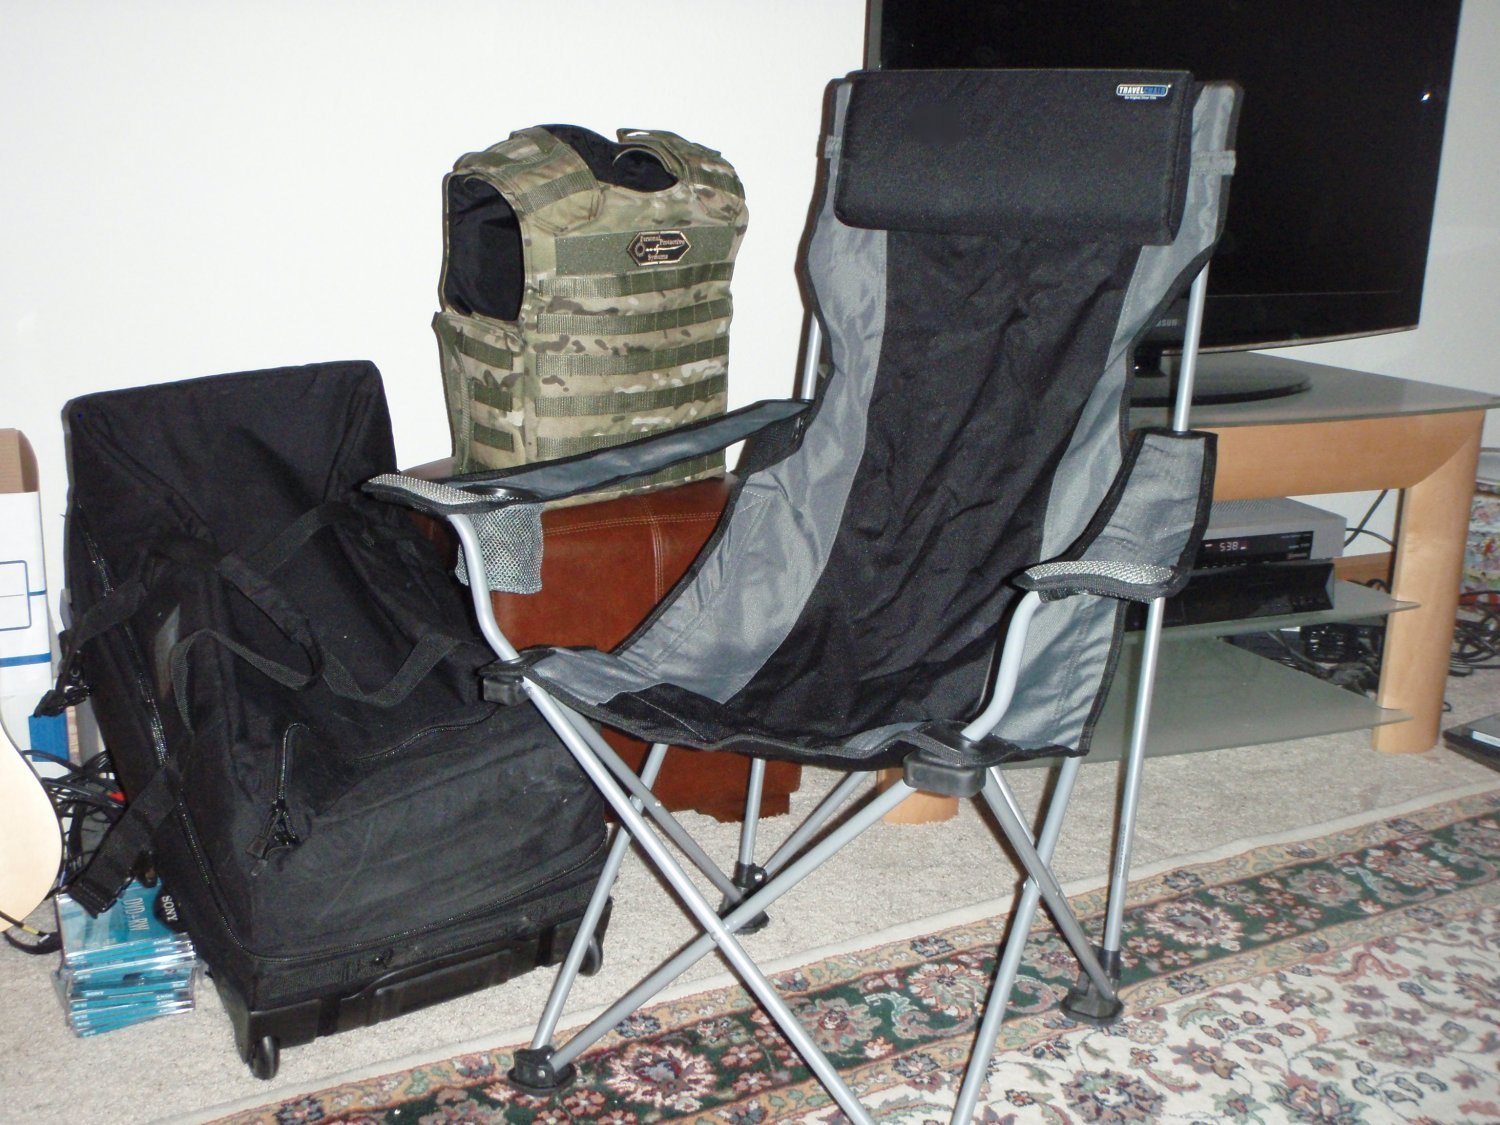 TravelChair 1 <!  :en  >TravelChair Portable Folding Lounge Chairs for Tactical Travel Applications<!  :  >